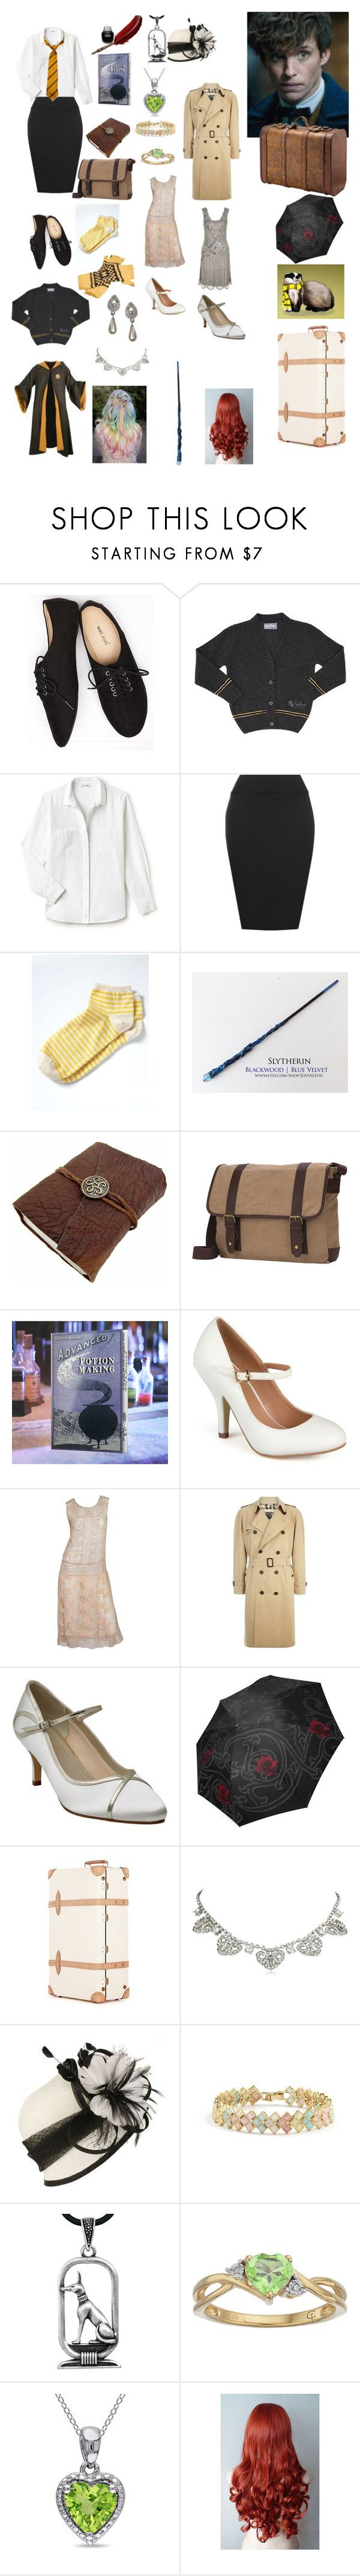 """""""Knowing Newt Scamander in Hogwarts and going with him to help him white his creatures"""" by ashley-schork ❤ liked on Polyvore featuring Wet Seal, Lacoste, WearAll, Banana Republic, Goodhope Bags, Journee Collection, Burberry, Rainbow Club, Globe-Trotter and Nina"""